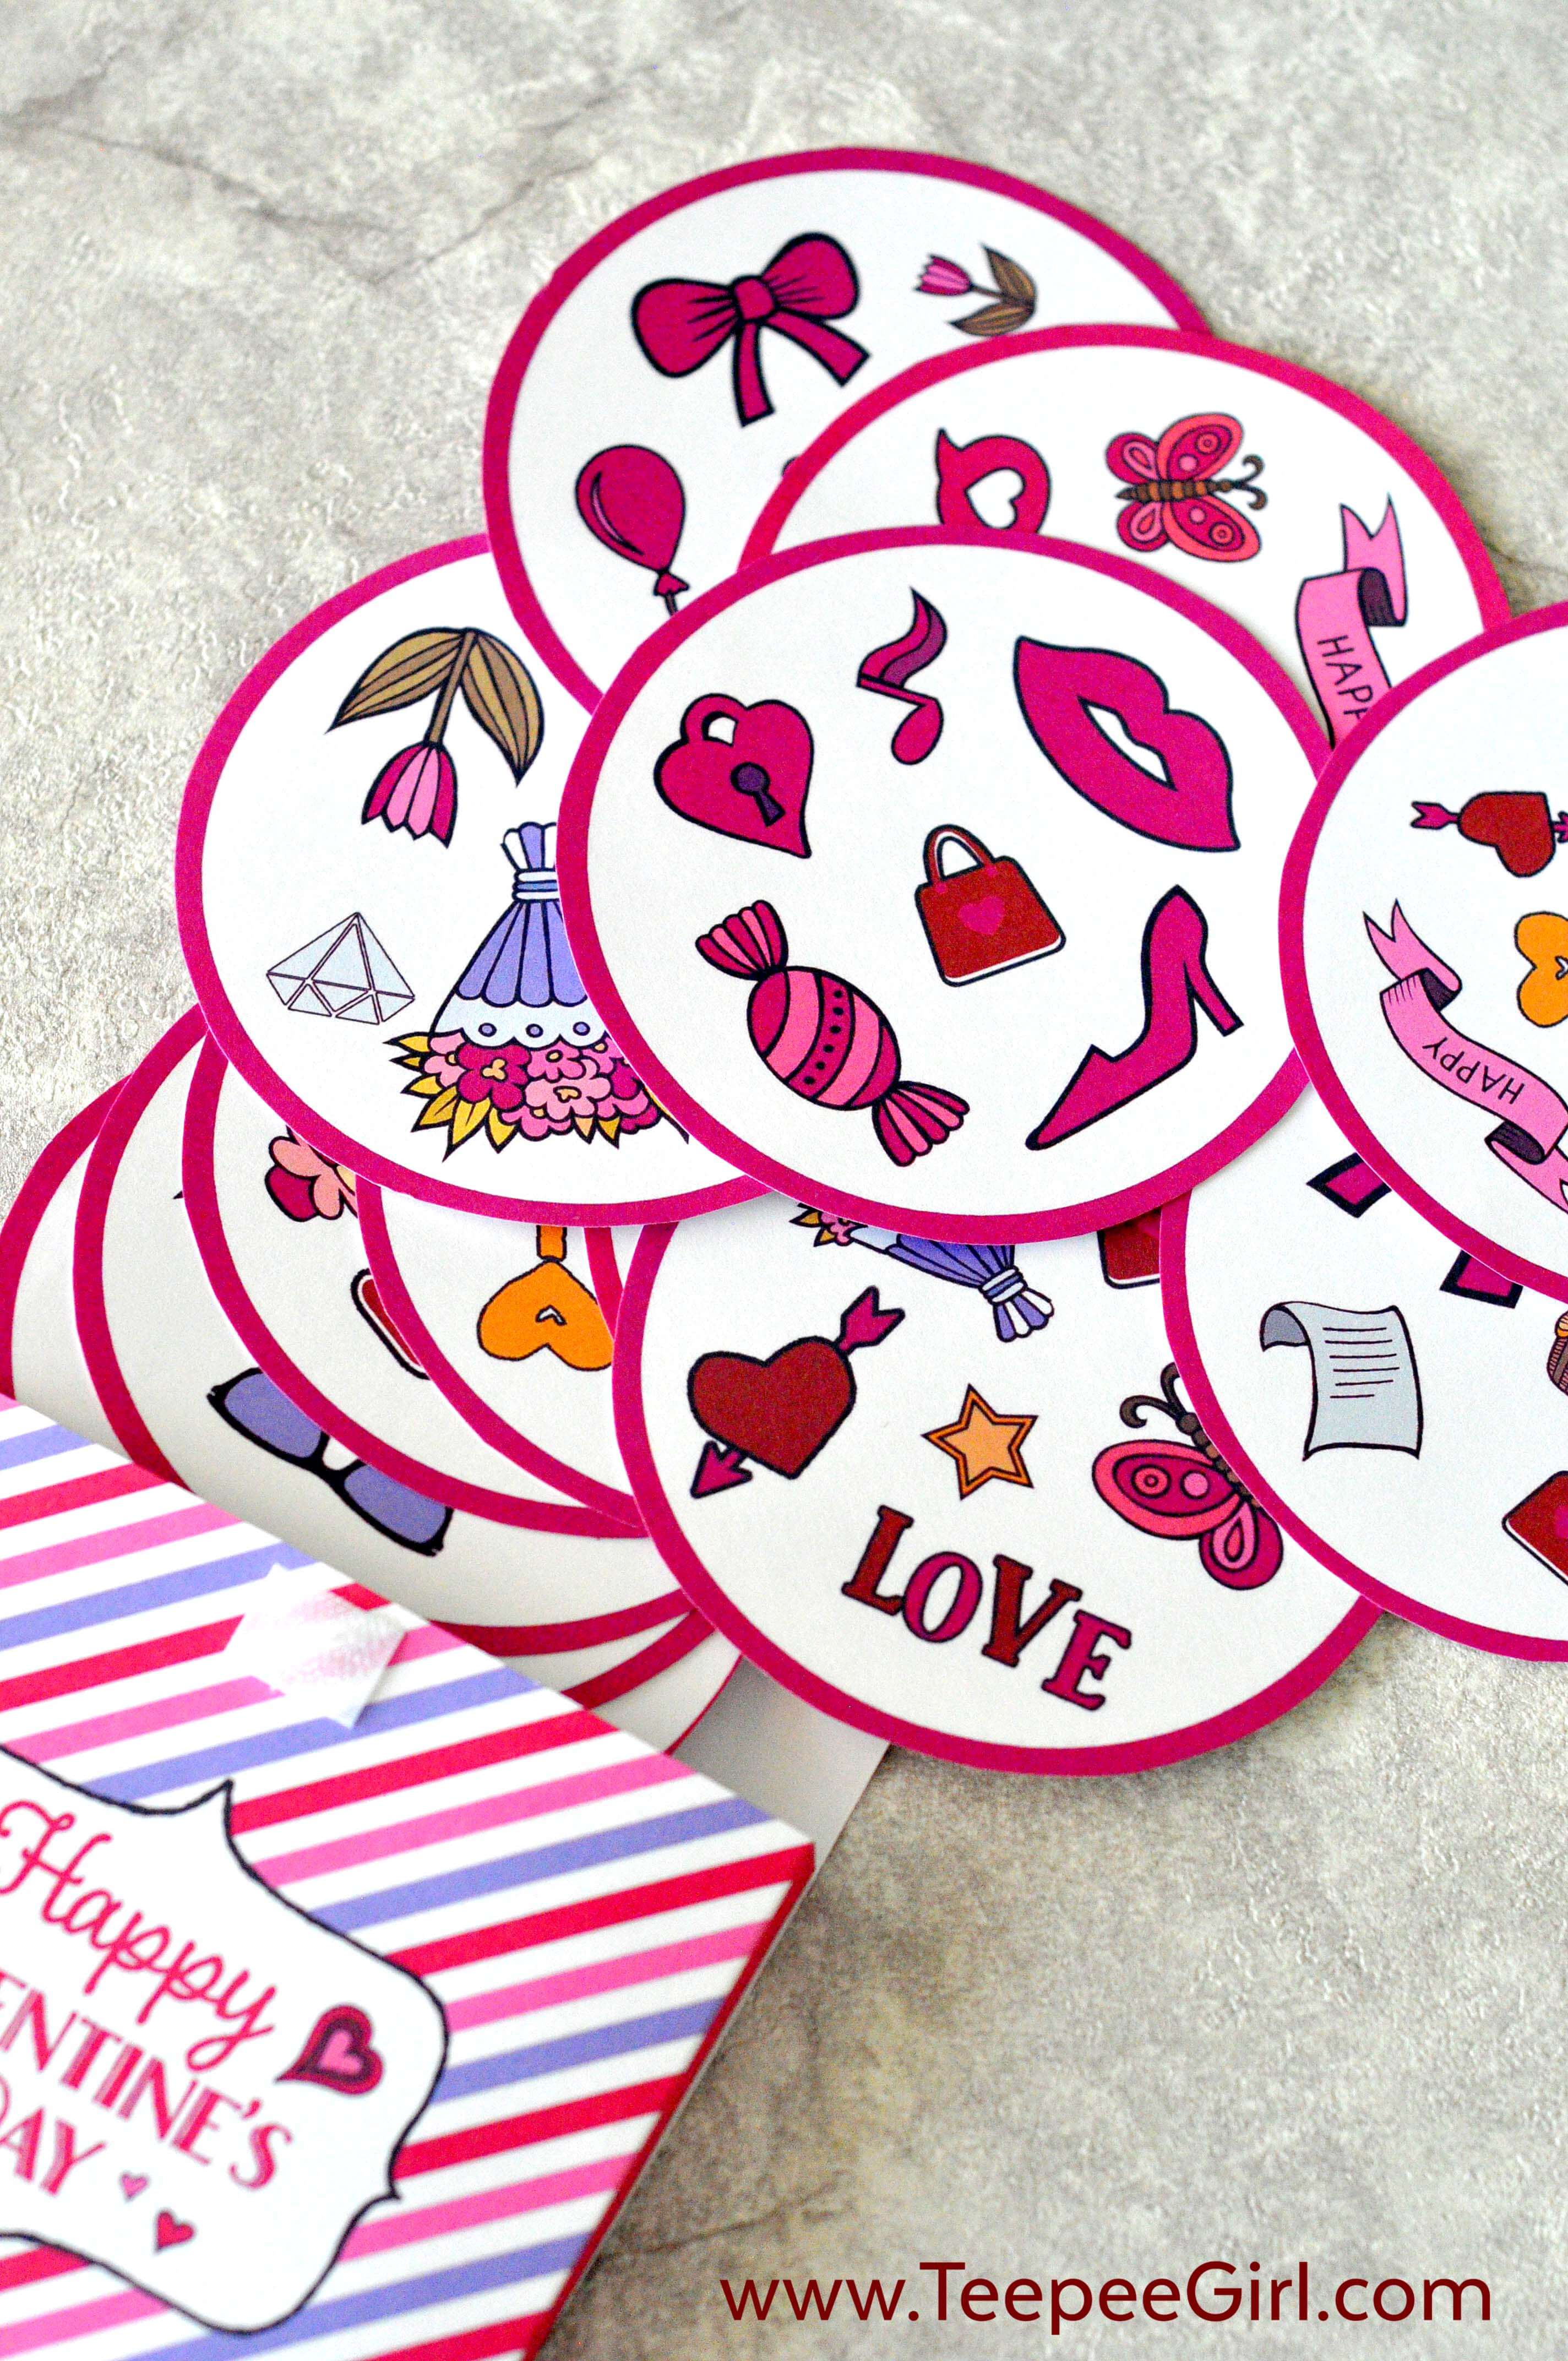 This free Valentine's Day matching game is perfect for all ages! It's colorful, bright, and super fun to play! Play it at class parties, play-dates, or at home. Even better, it comes with a matching gift box for storage-it's the perfect and inexpensive gift for families everywhere! www.TeepeeGirl.com